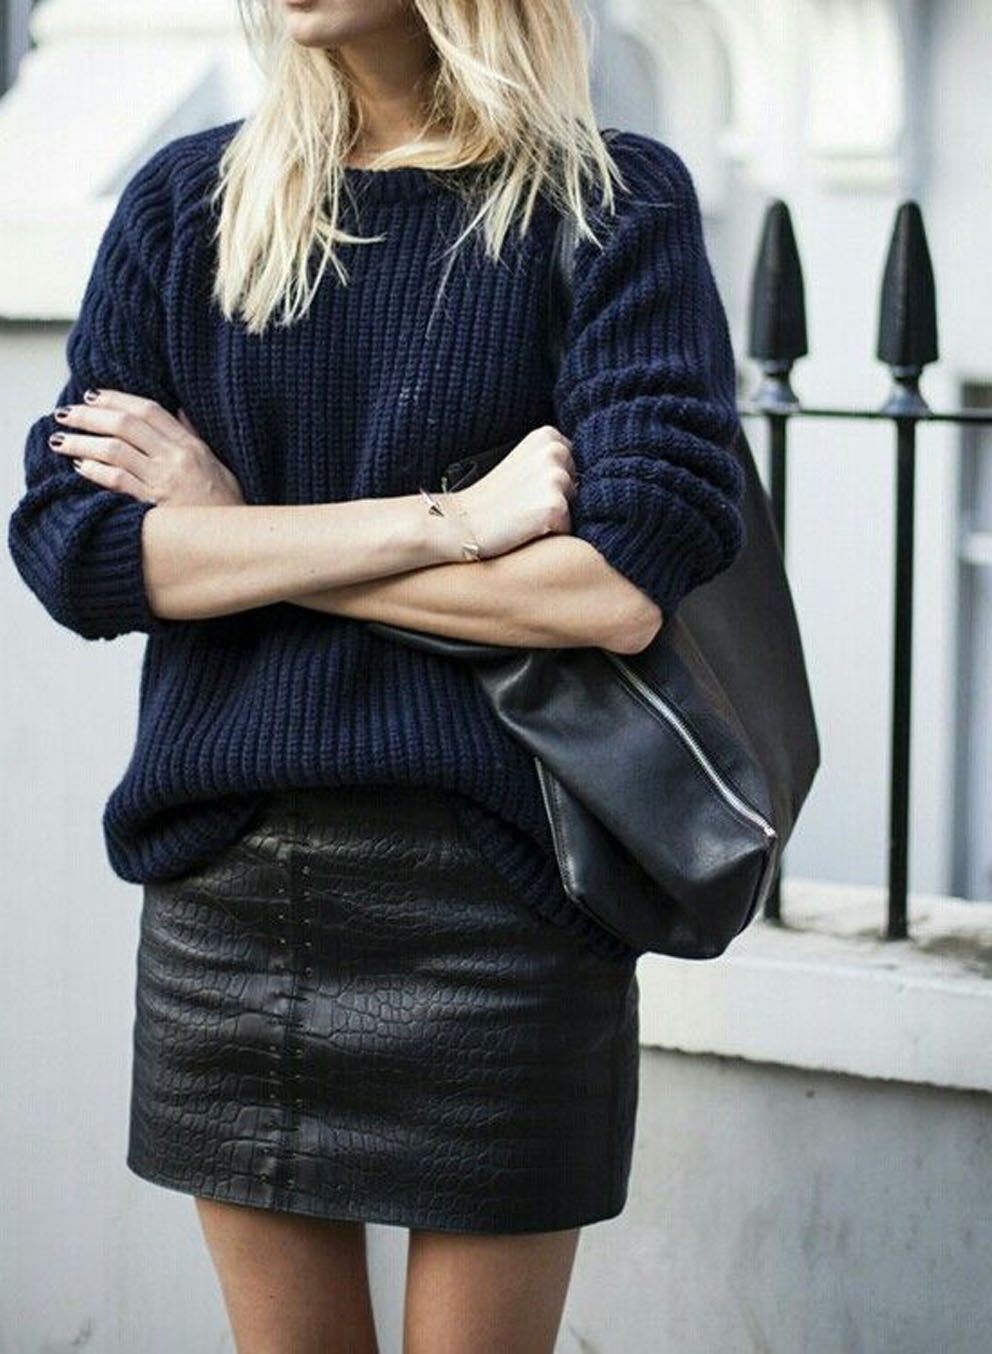 40+ Style Ideas On How To Wear Knit Clothes This season ...